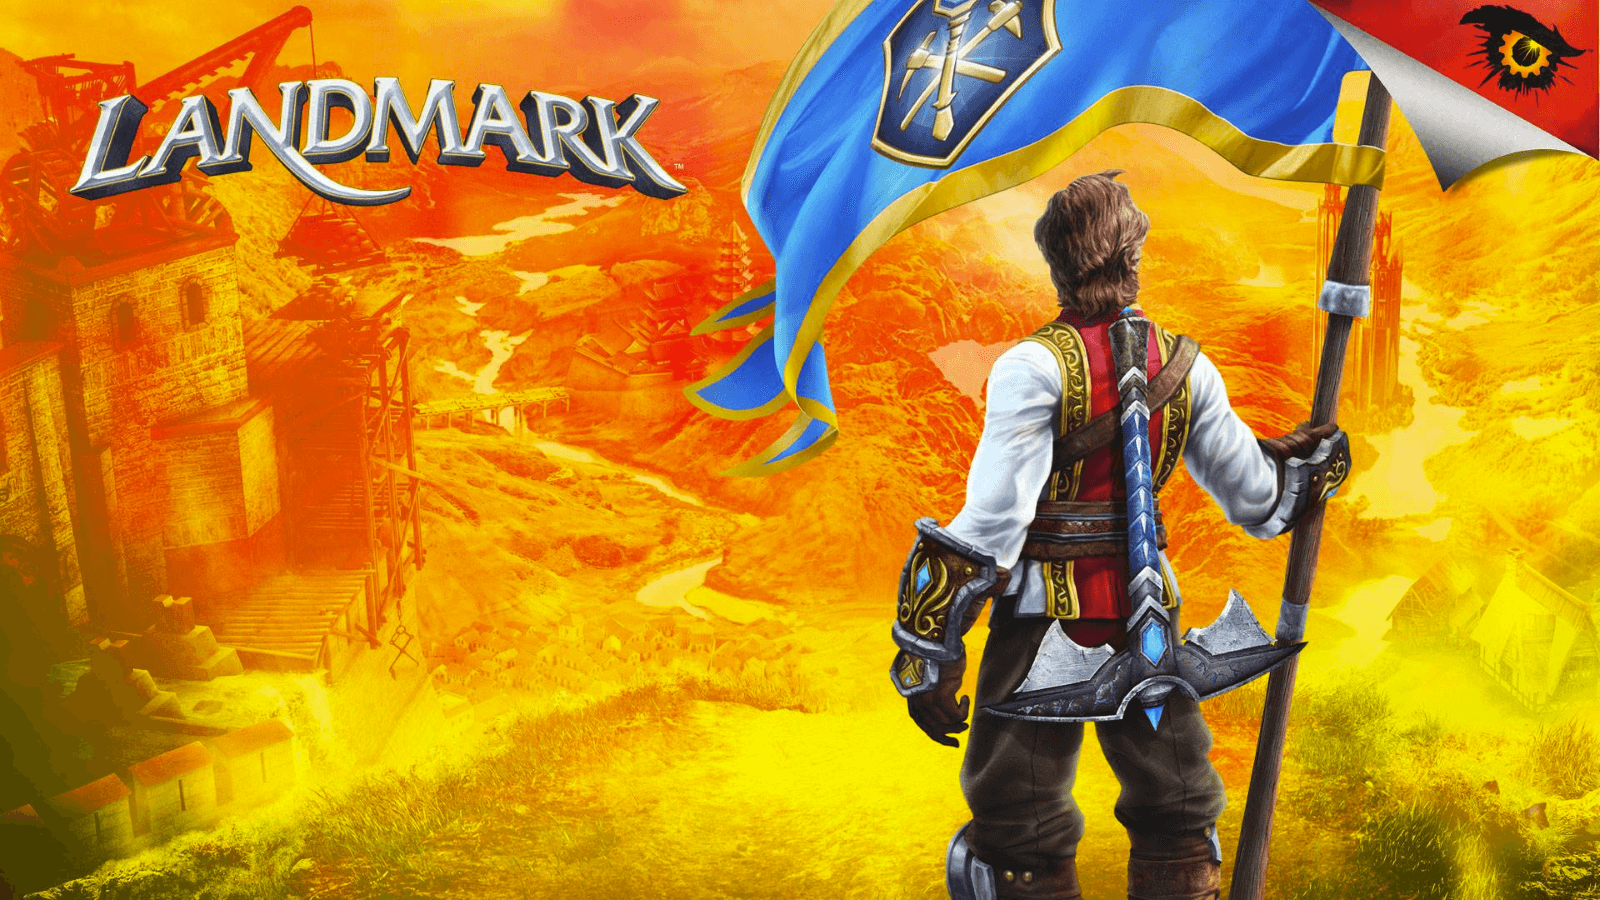 EverQuest Next Cancelled and Landmark Release Date Announced